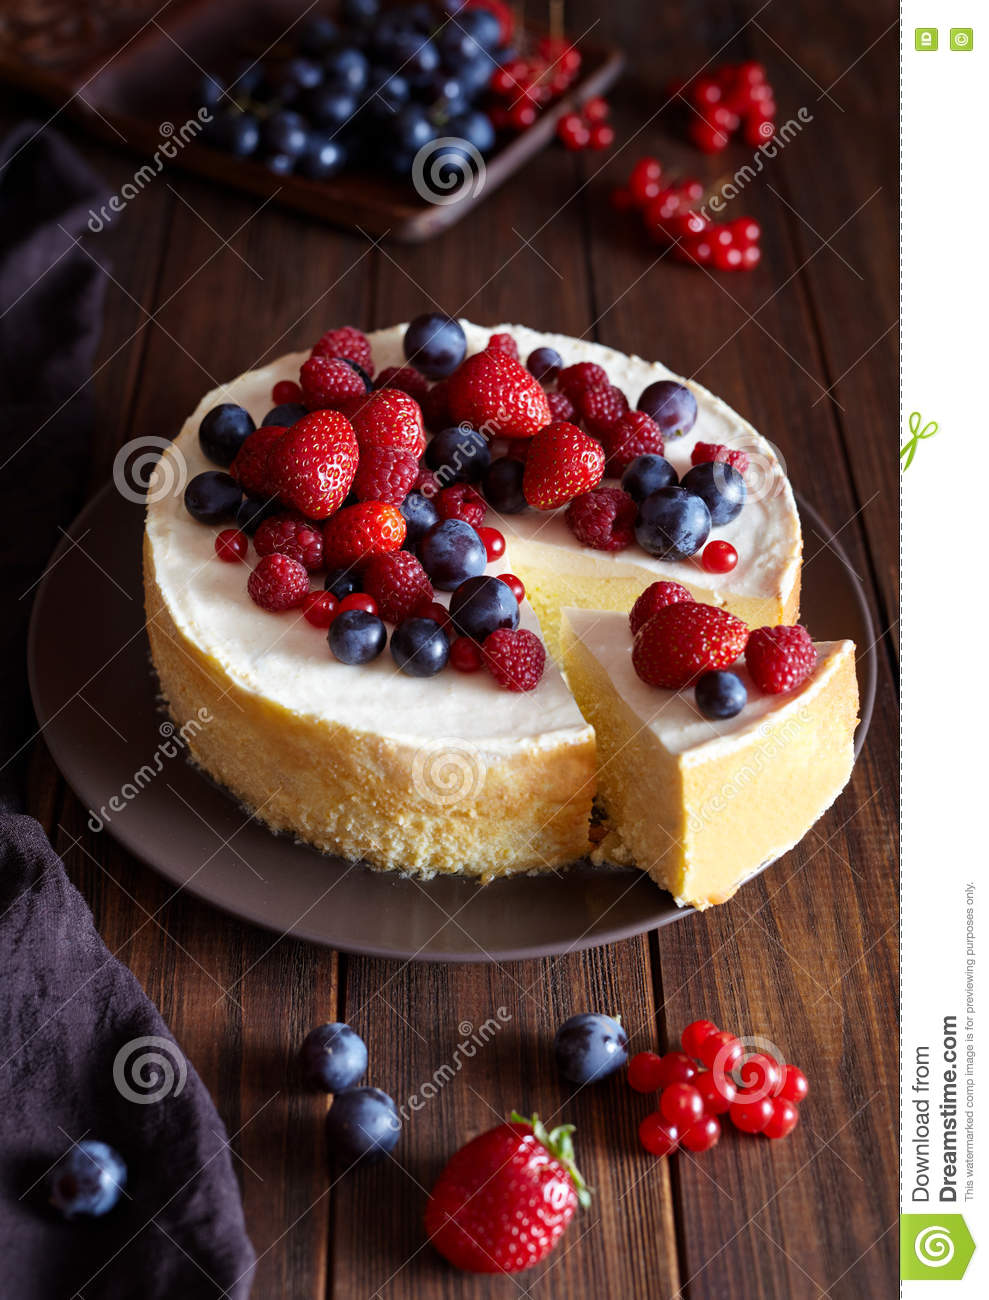 Homemade cheese cake with strawberry and winter berries. New York Cheesecake. Christmas dessert. Healthy food.